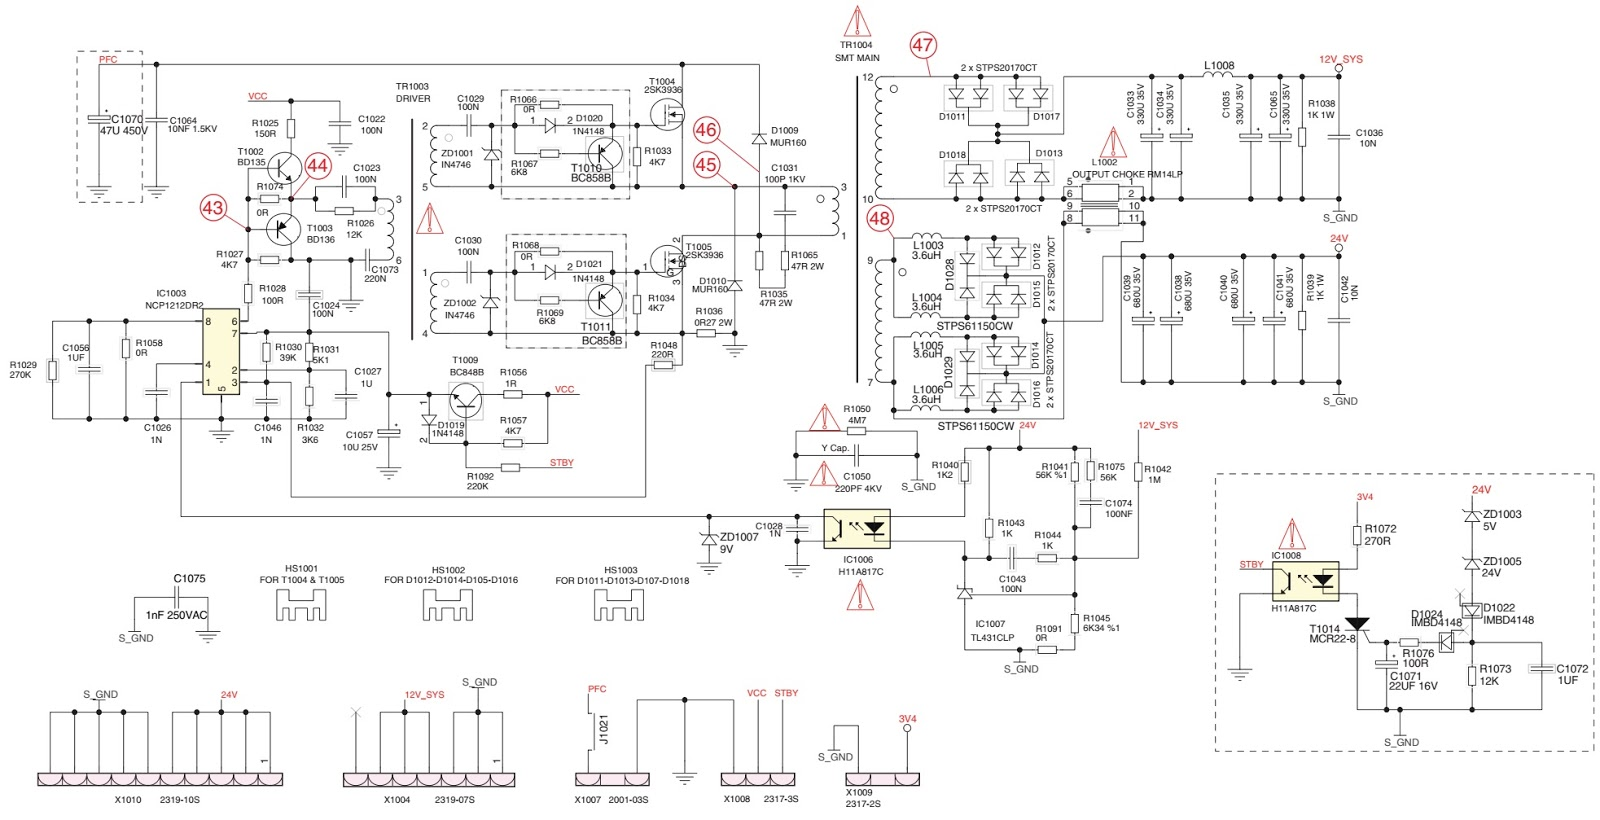 hight resolution of grundig lcd tv smps schematics circuit diagrams electronic figure 2 block diagram of an lcd tv power supply